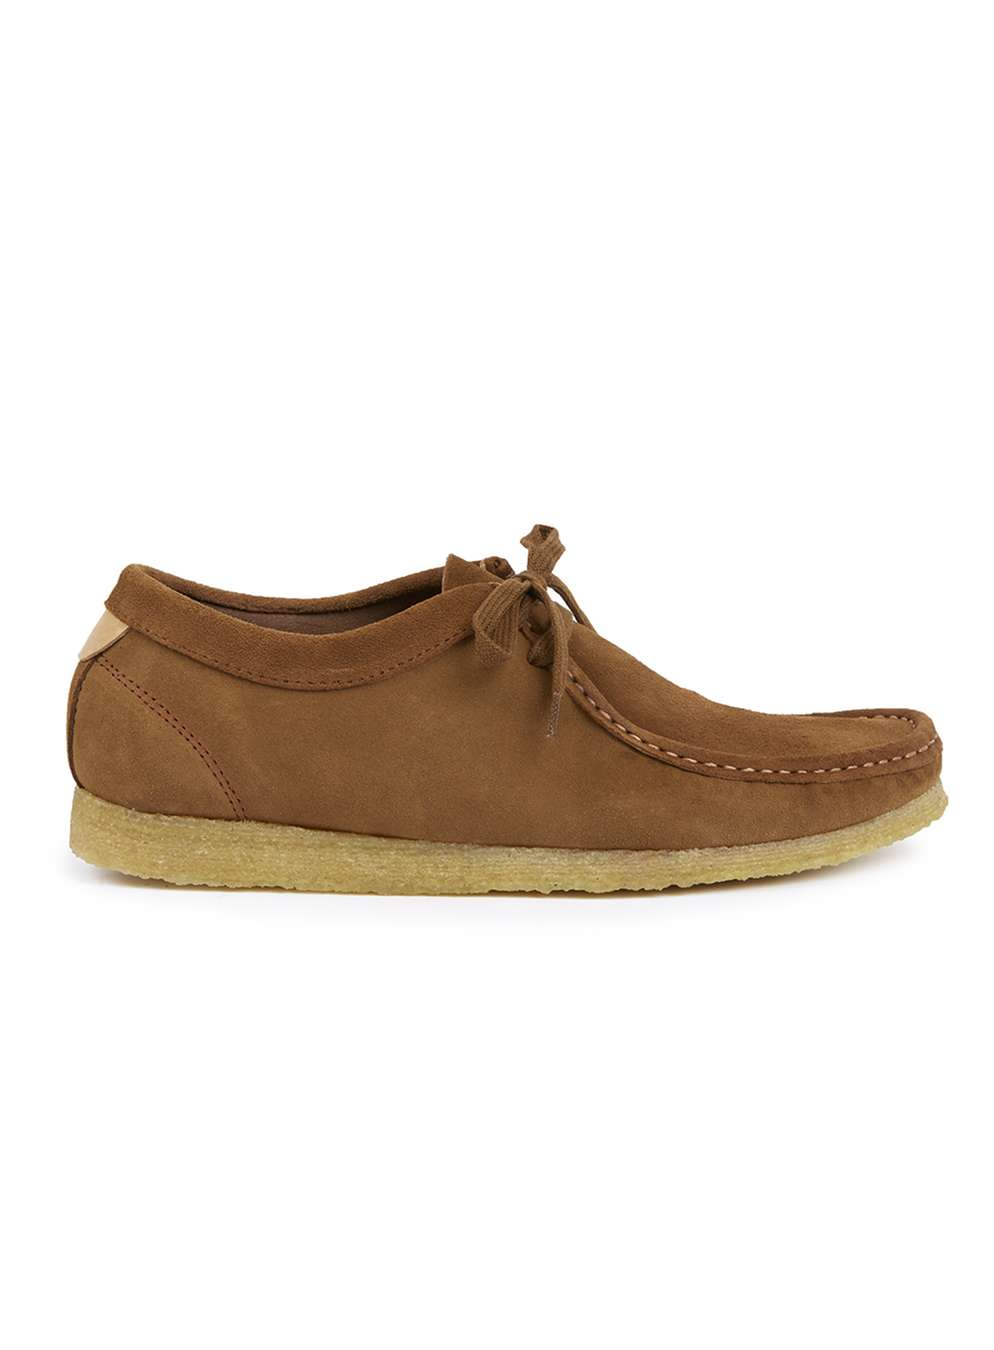 Bally Mens Suede Lace Shoes